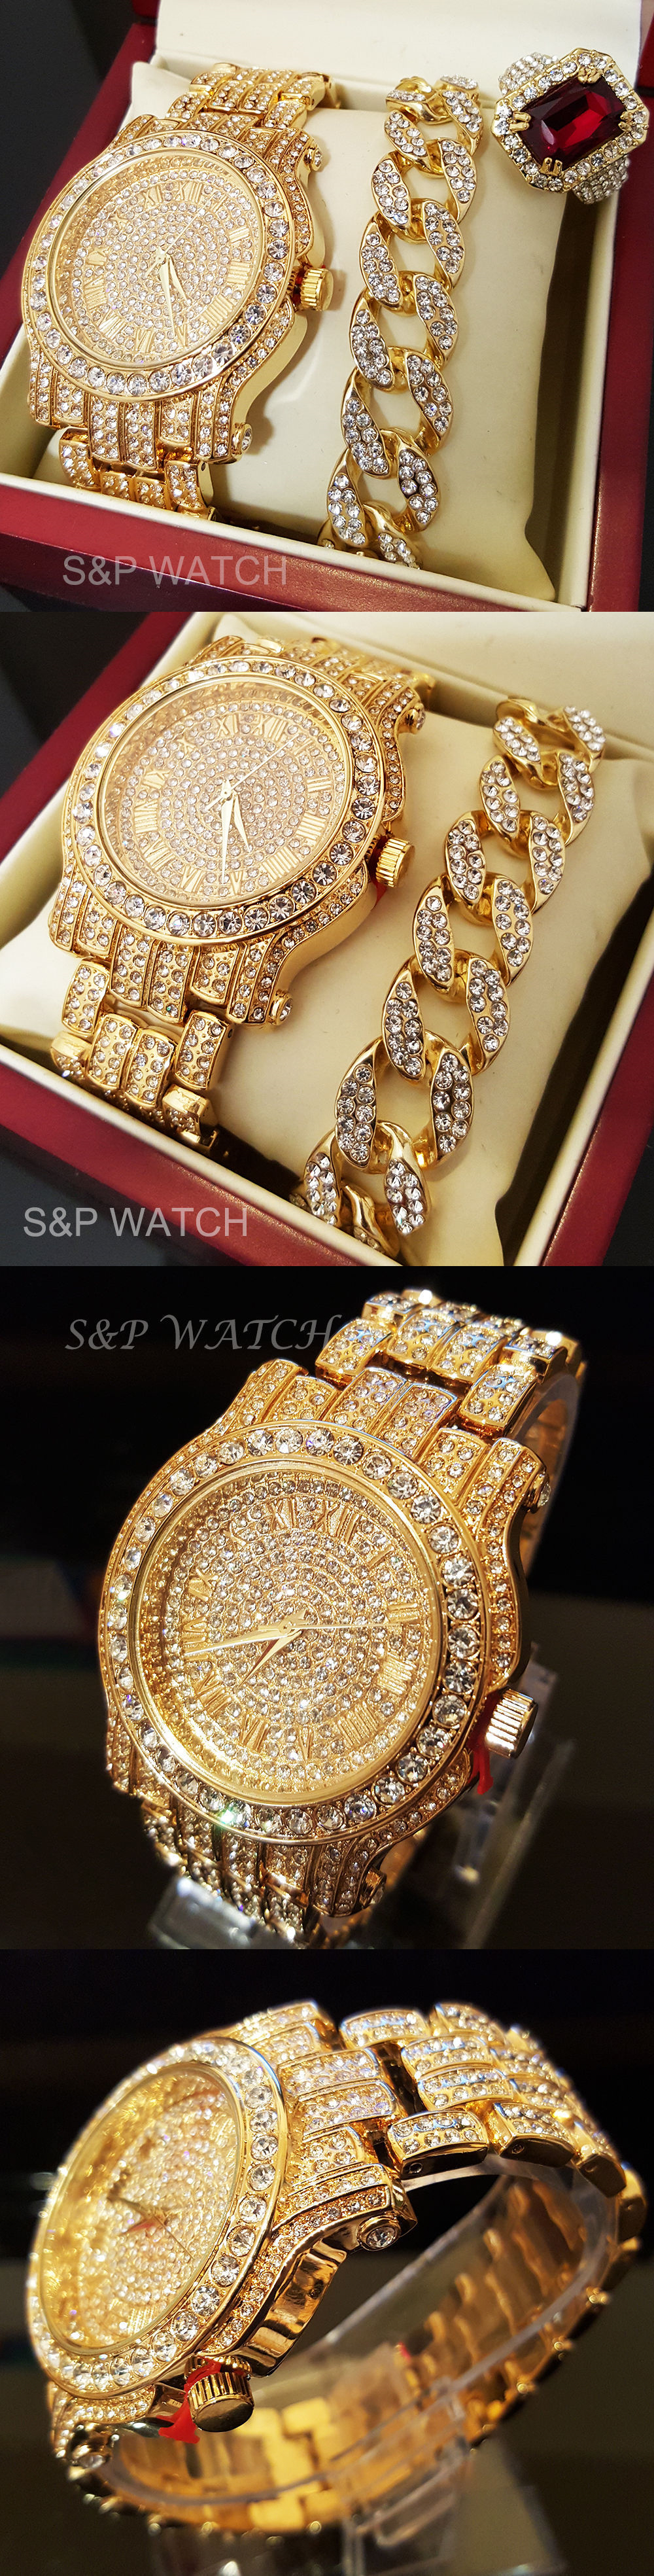 Rings men hip hop iced out gold tone best seller watch and